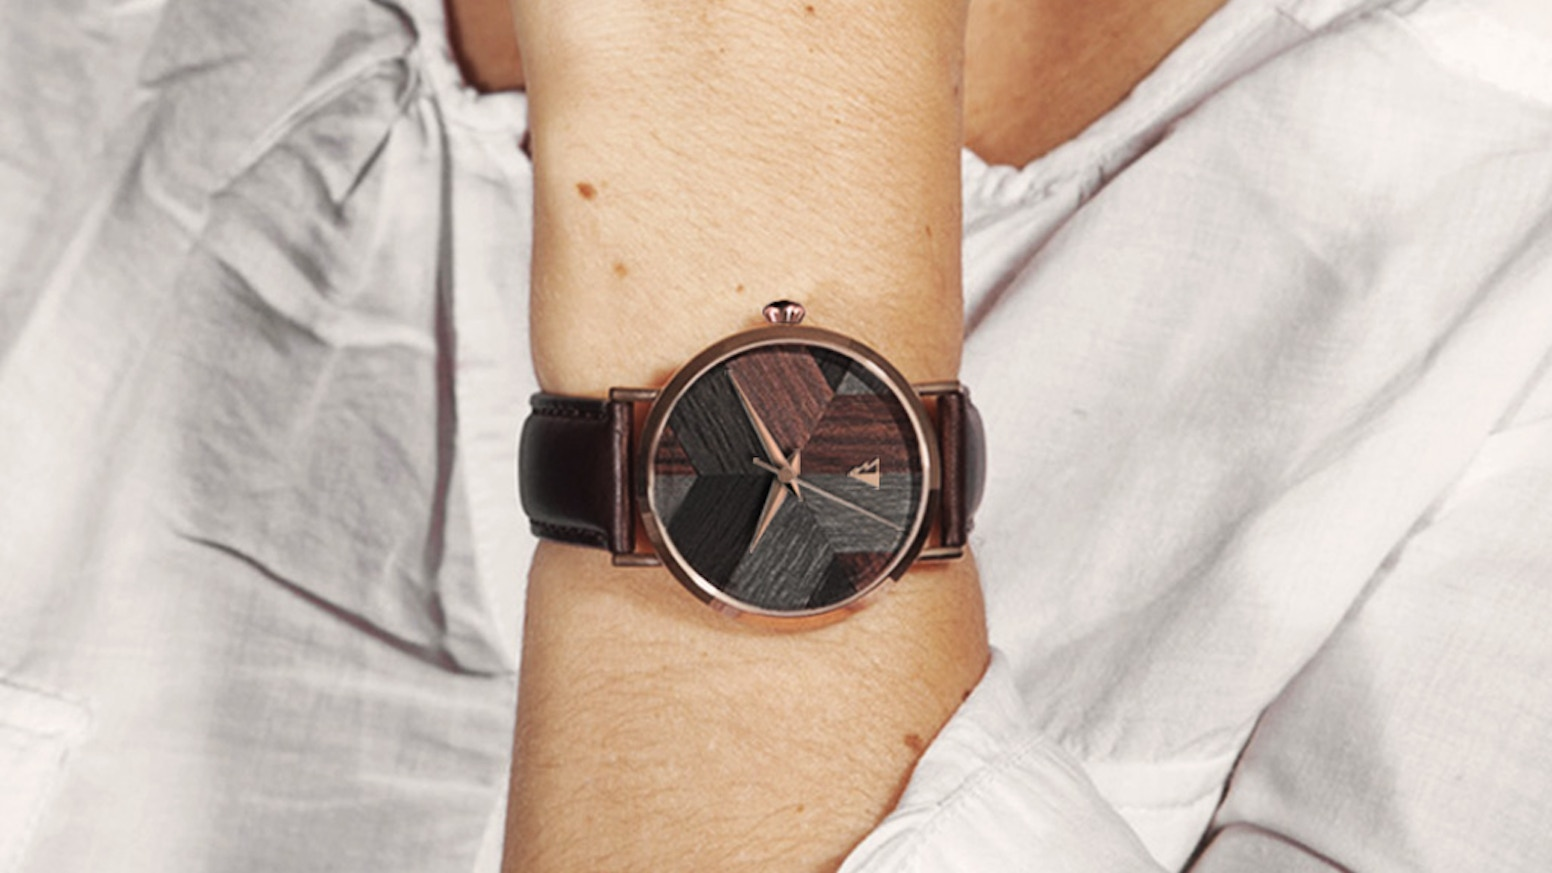 Timeless, high-quality watches including Swiss movement and vegetable-tanned leather straps.